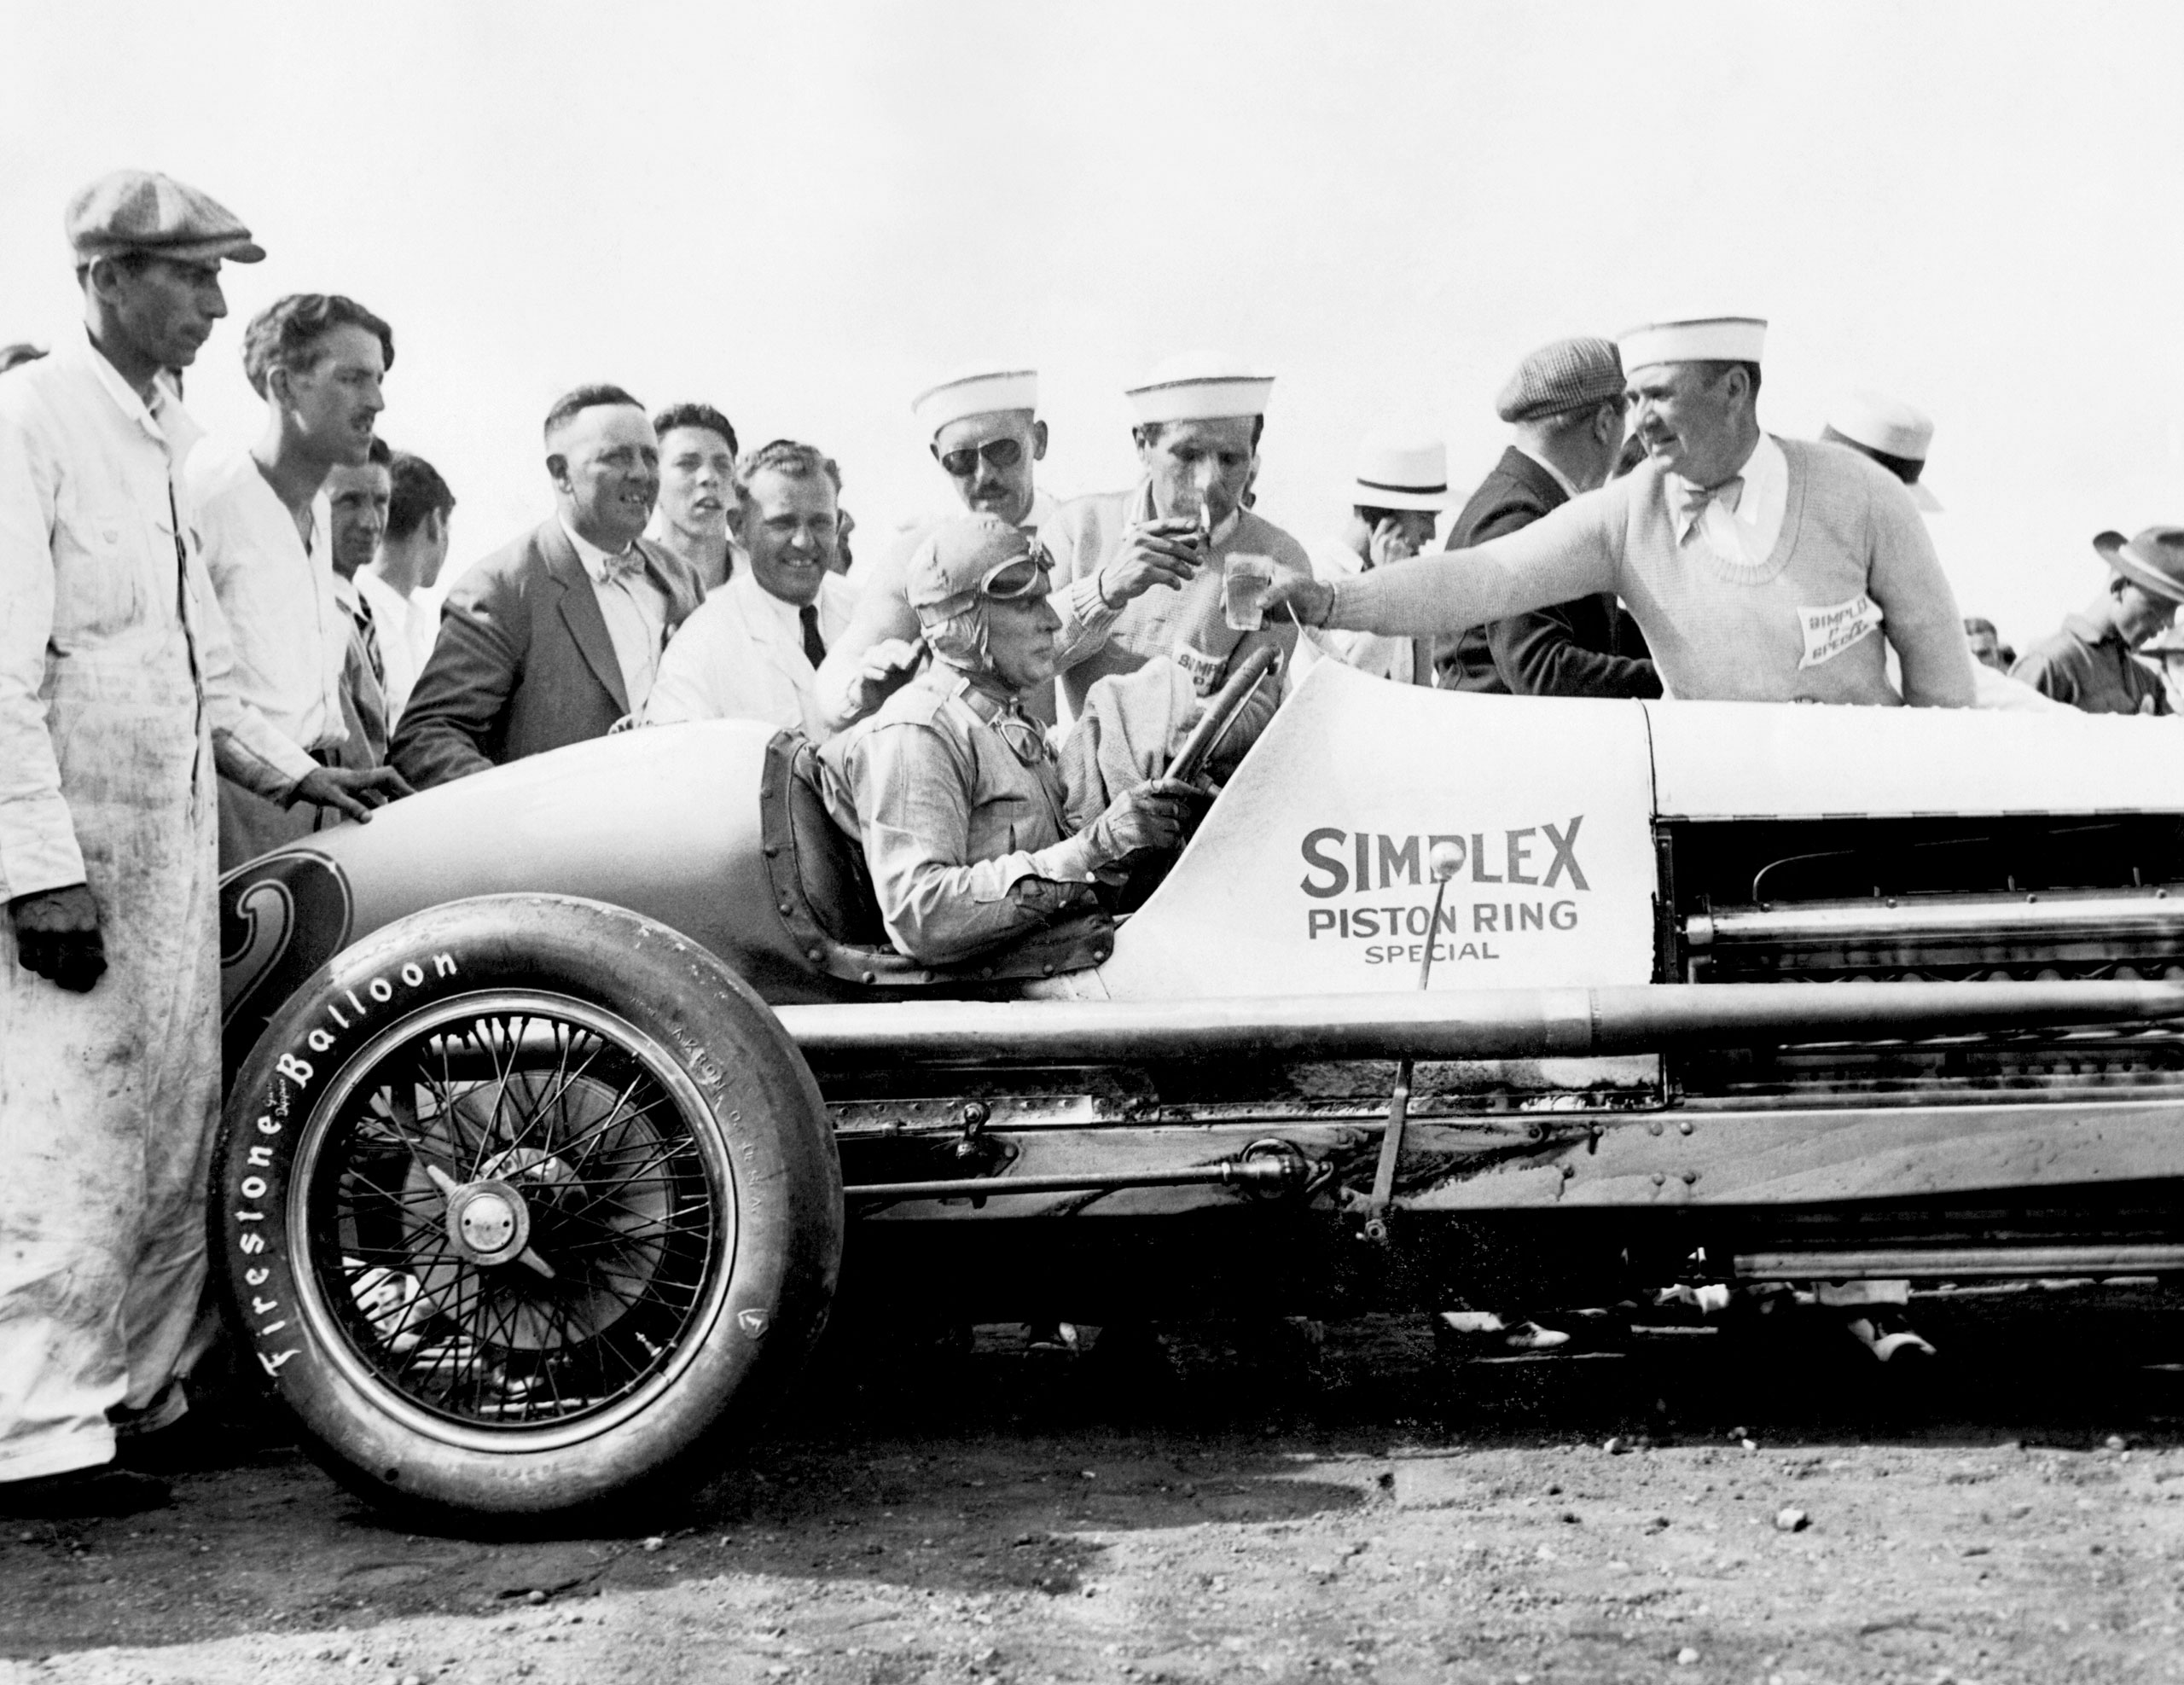 Race car driver Ray Keech in his Simplex Piston Ring Special #2 race car after winning the Indy 500. Indianapolis, Indiana, 1929.